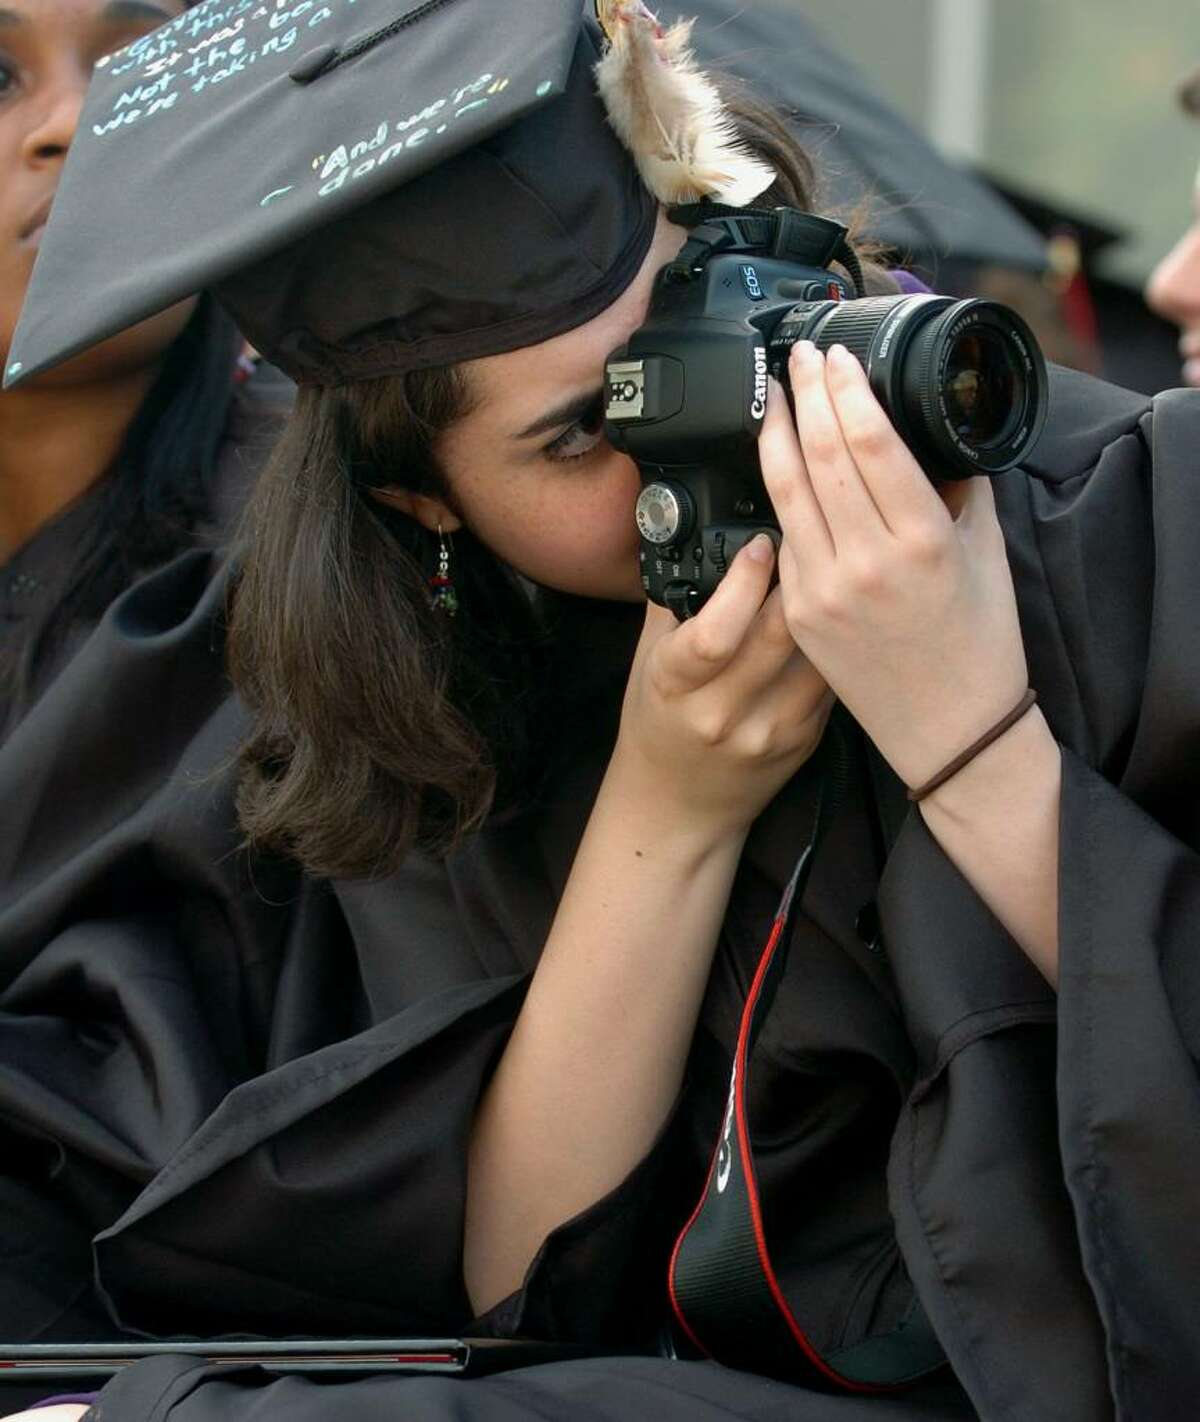 Graduate Katherine Roman takes pictures of her friends as they graduate, during Fairfield Warde's 6th Annual Commencement Exercises in Fairfield, Conn. on Thursday June 24, 2010.